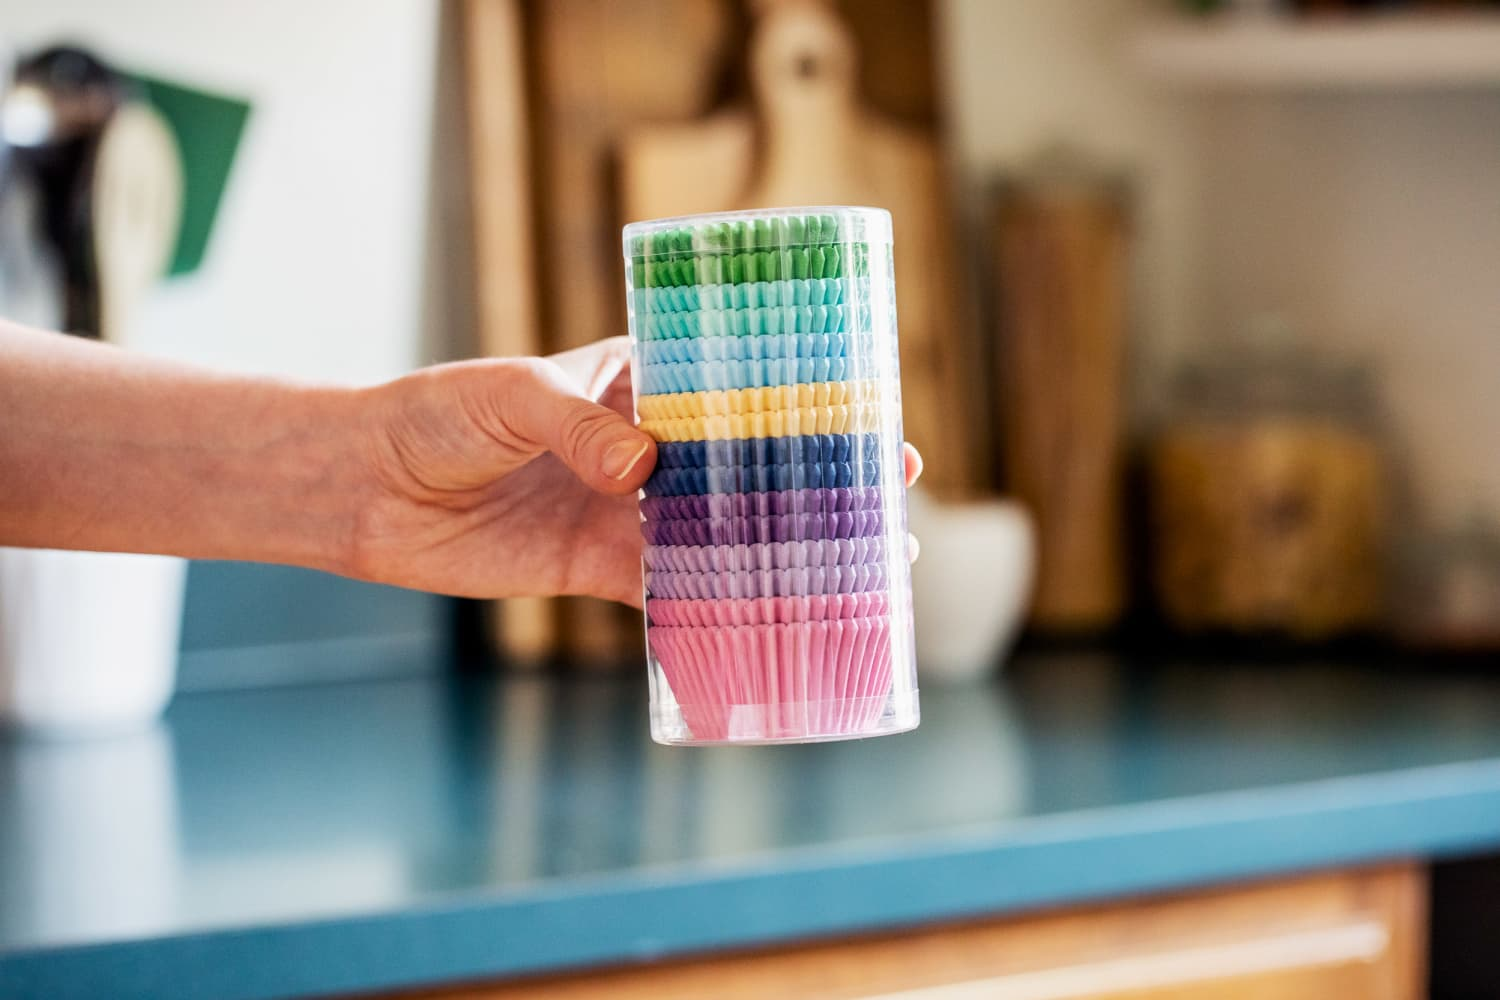 The First Thing You Should Do with a New Pack of Cupcake Liners